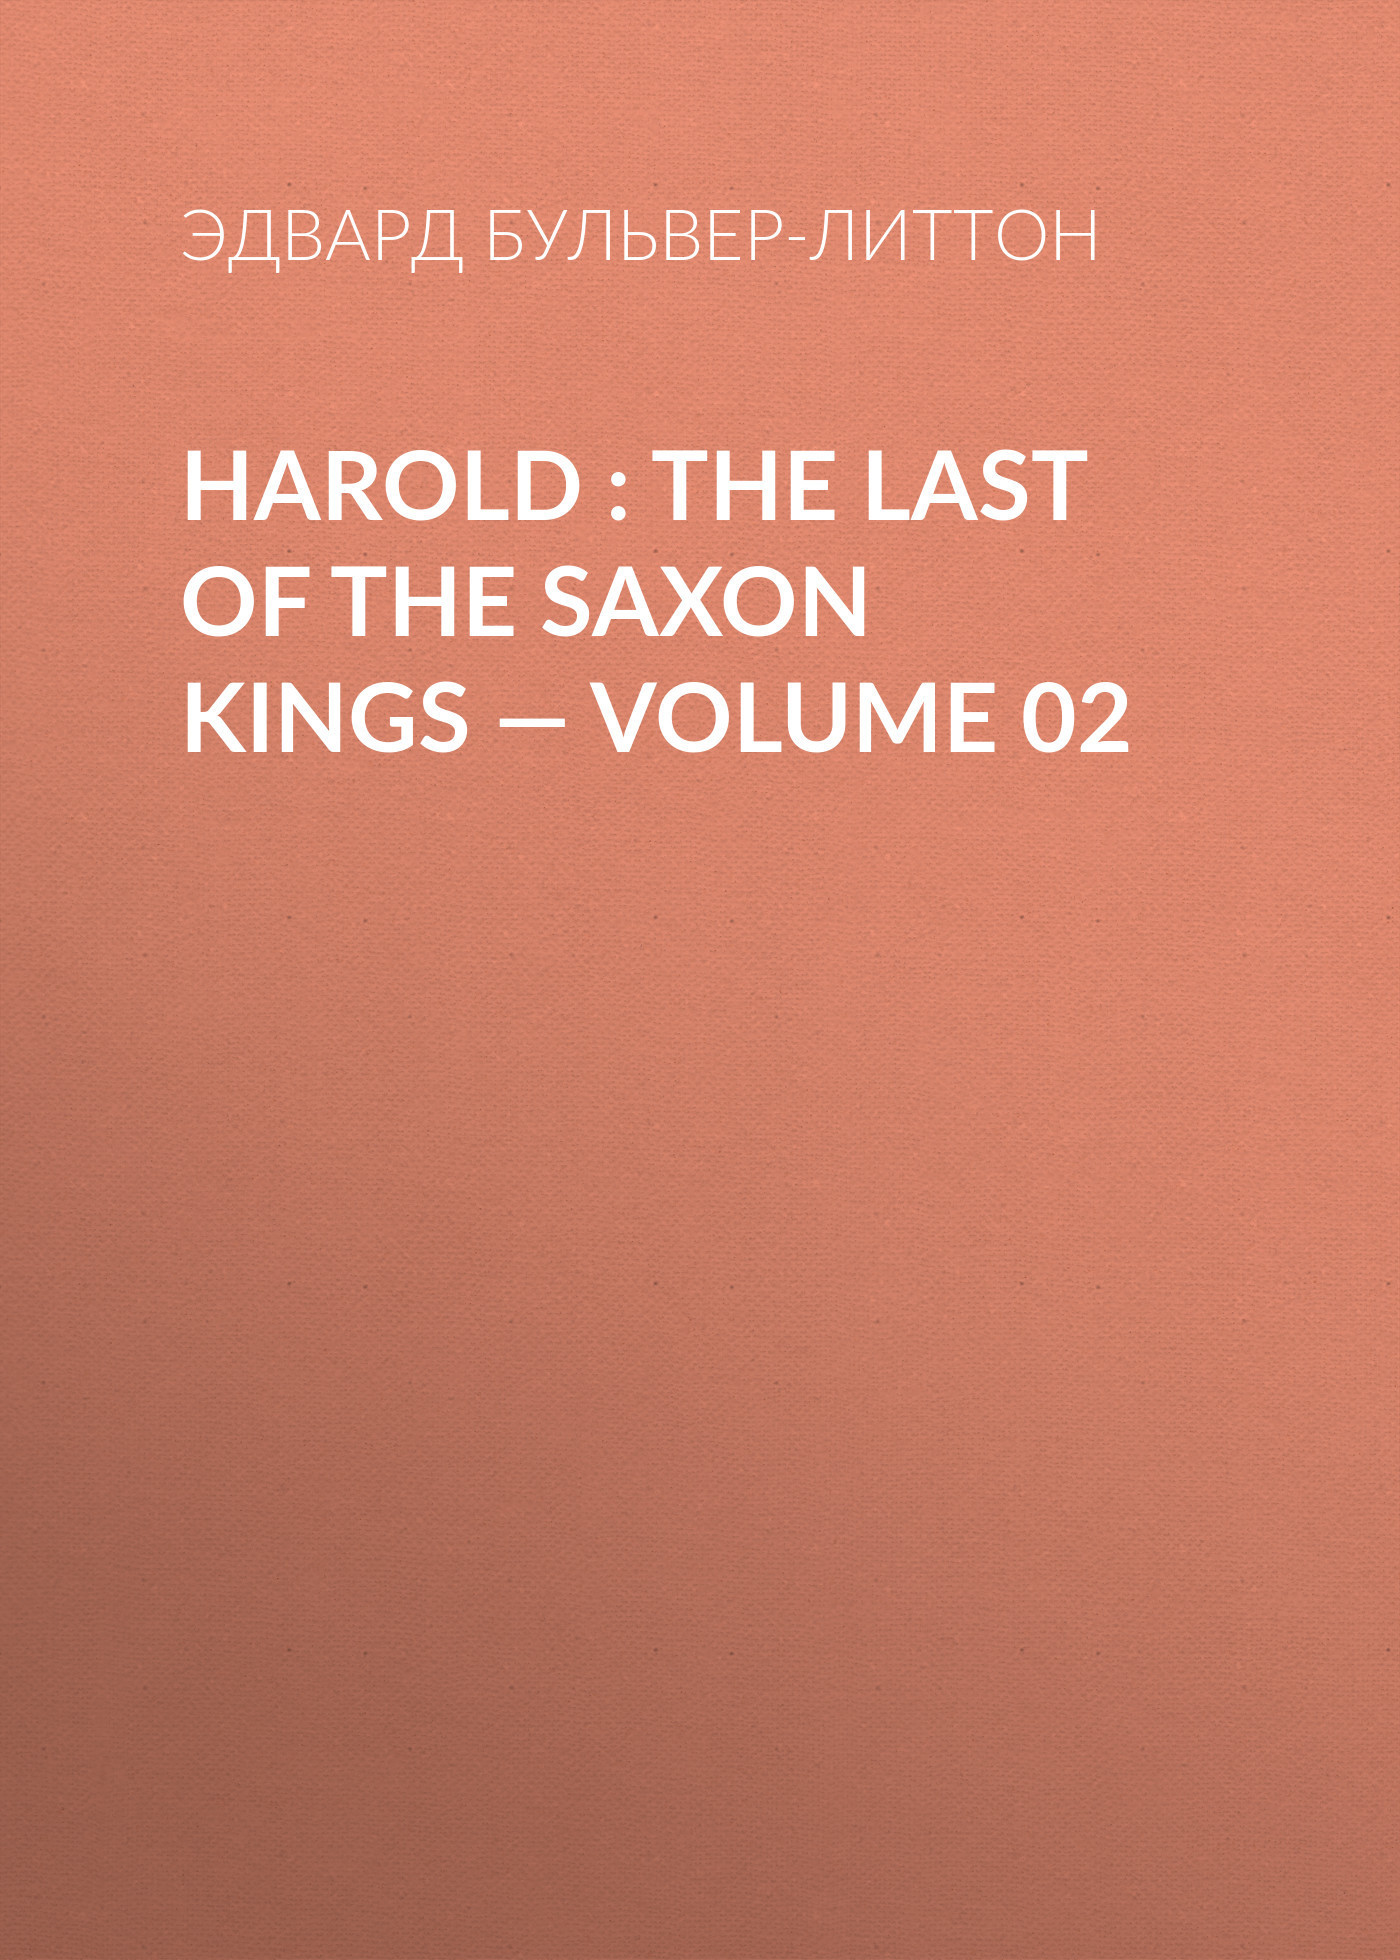 Эдвард Бульвер-Литтон Harold : the Last of the Saxon Kings — Volume 02 кеды lacoste lacoste la038amwqp26